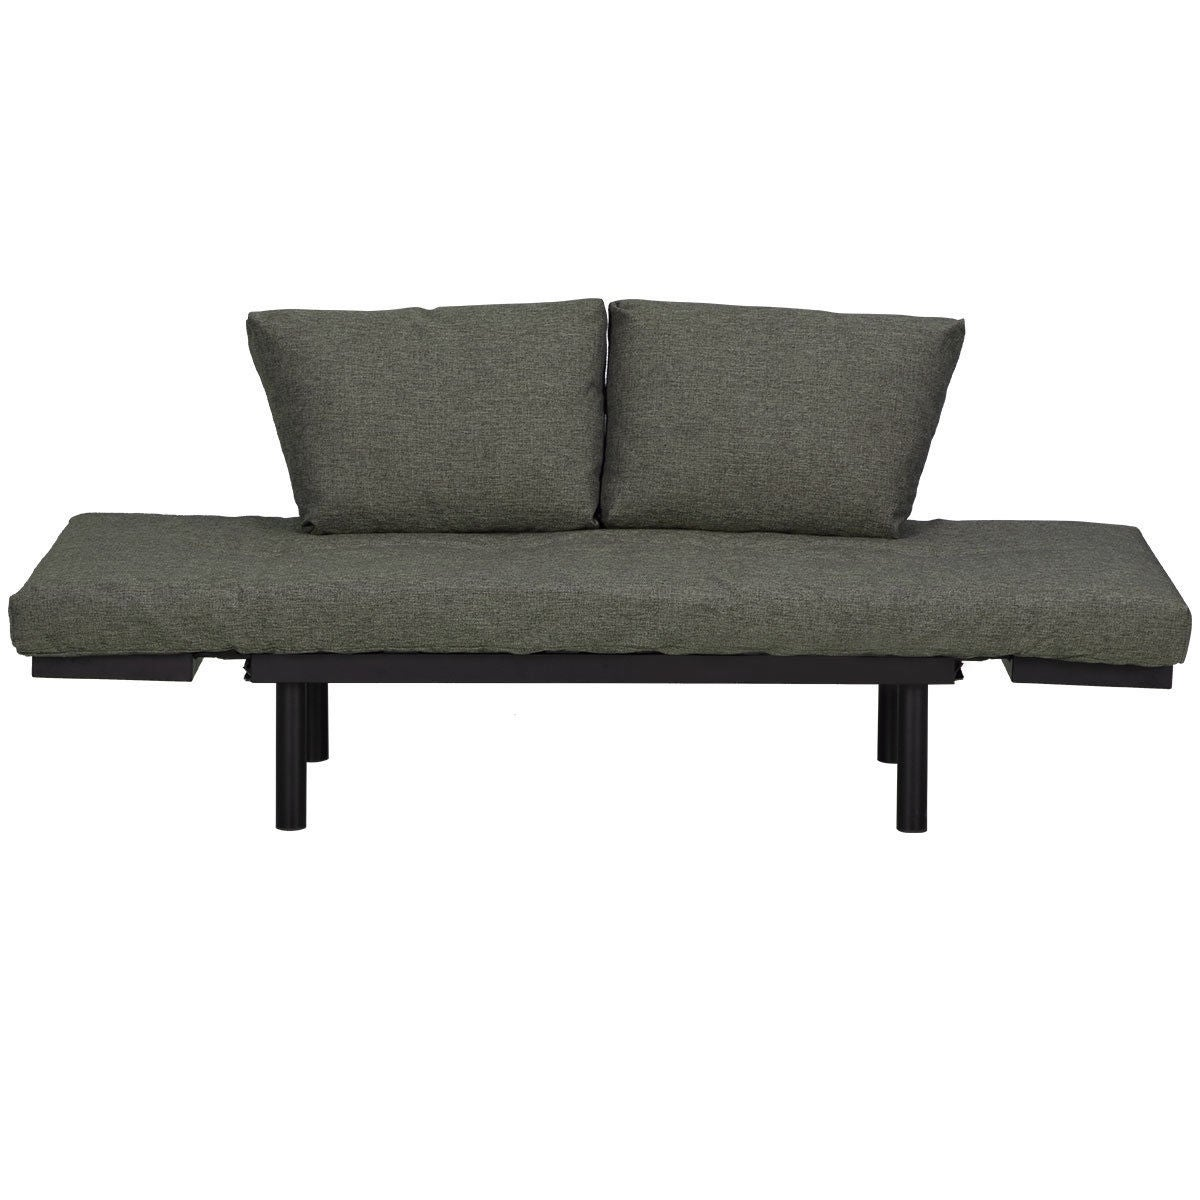 Costway Futon Sofa Sleeper Loveseat Convertible Bed Lounger W Adjule Armrests As Pic Free Shipping Today 22437194